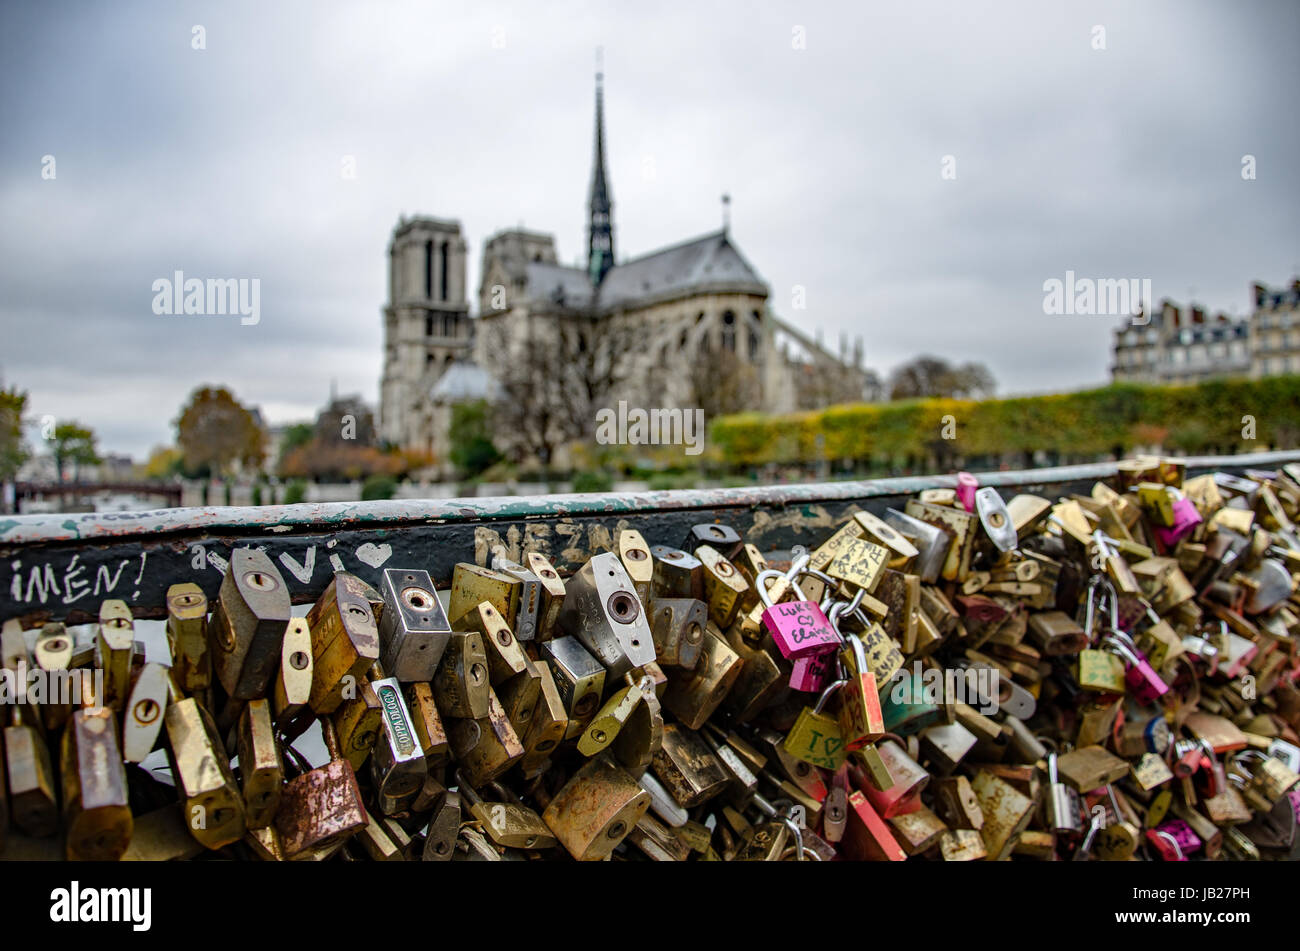 Love locks on the bridge with Notre-Dame cathedral in the background - Stock Image